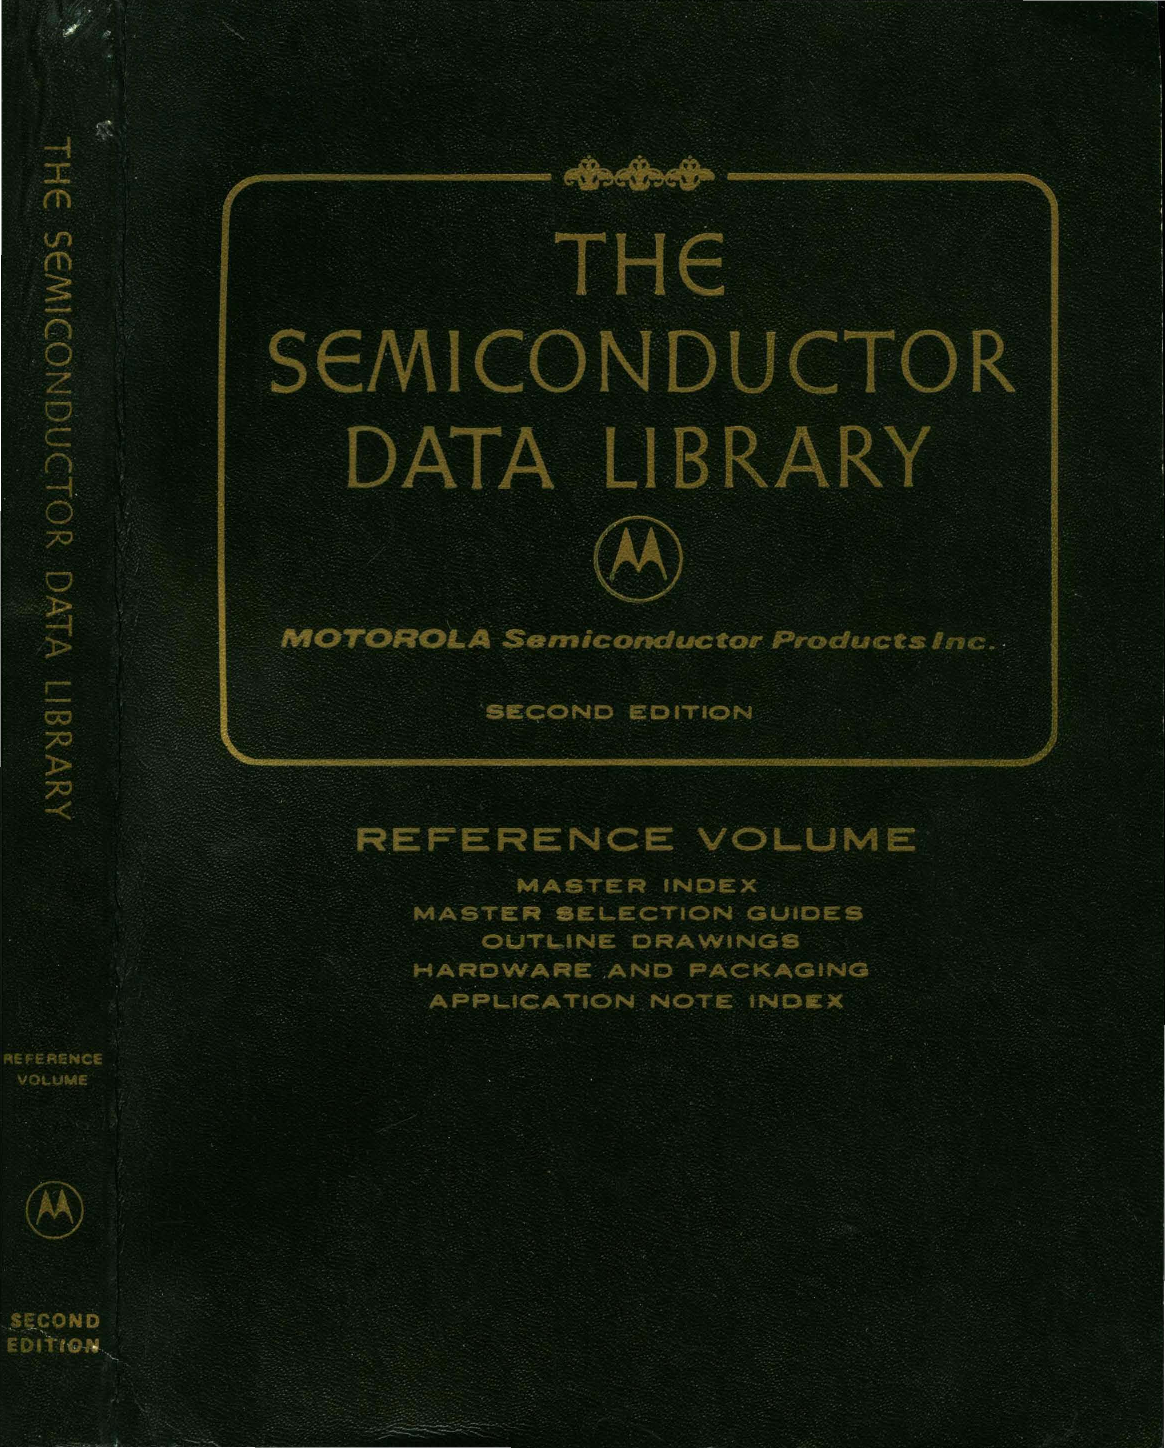 1972 Motorola Semiconductor Library Second Edition Vol3 By Triac 2n6075 And Lm555lm358 Electronic Projects Circuits